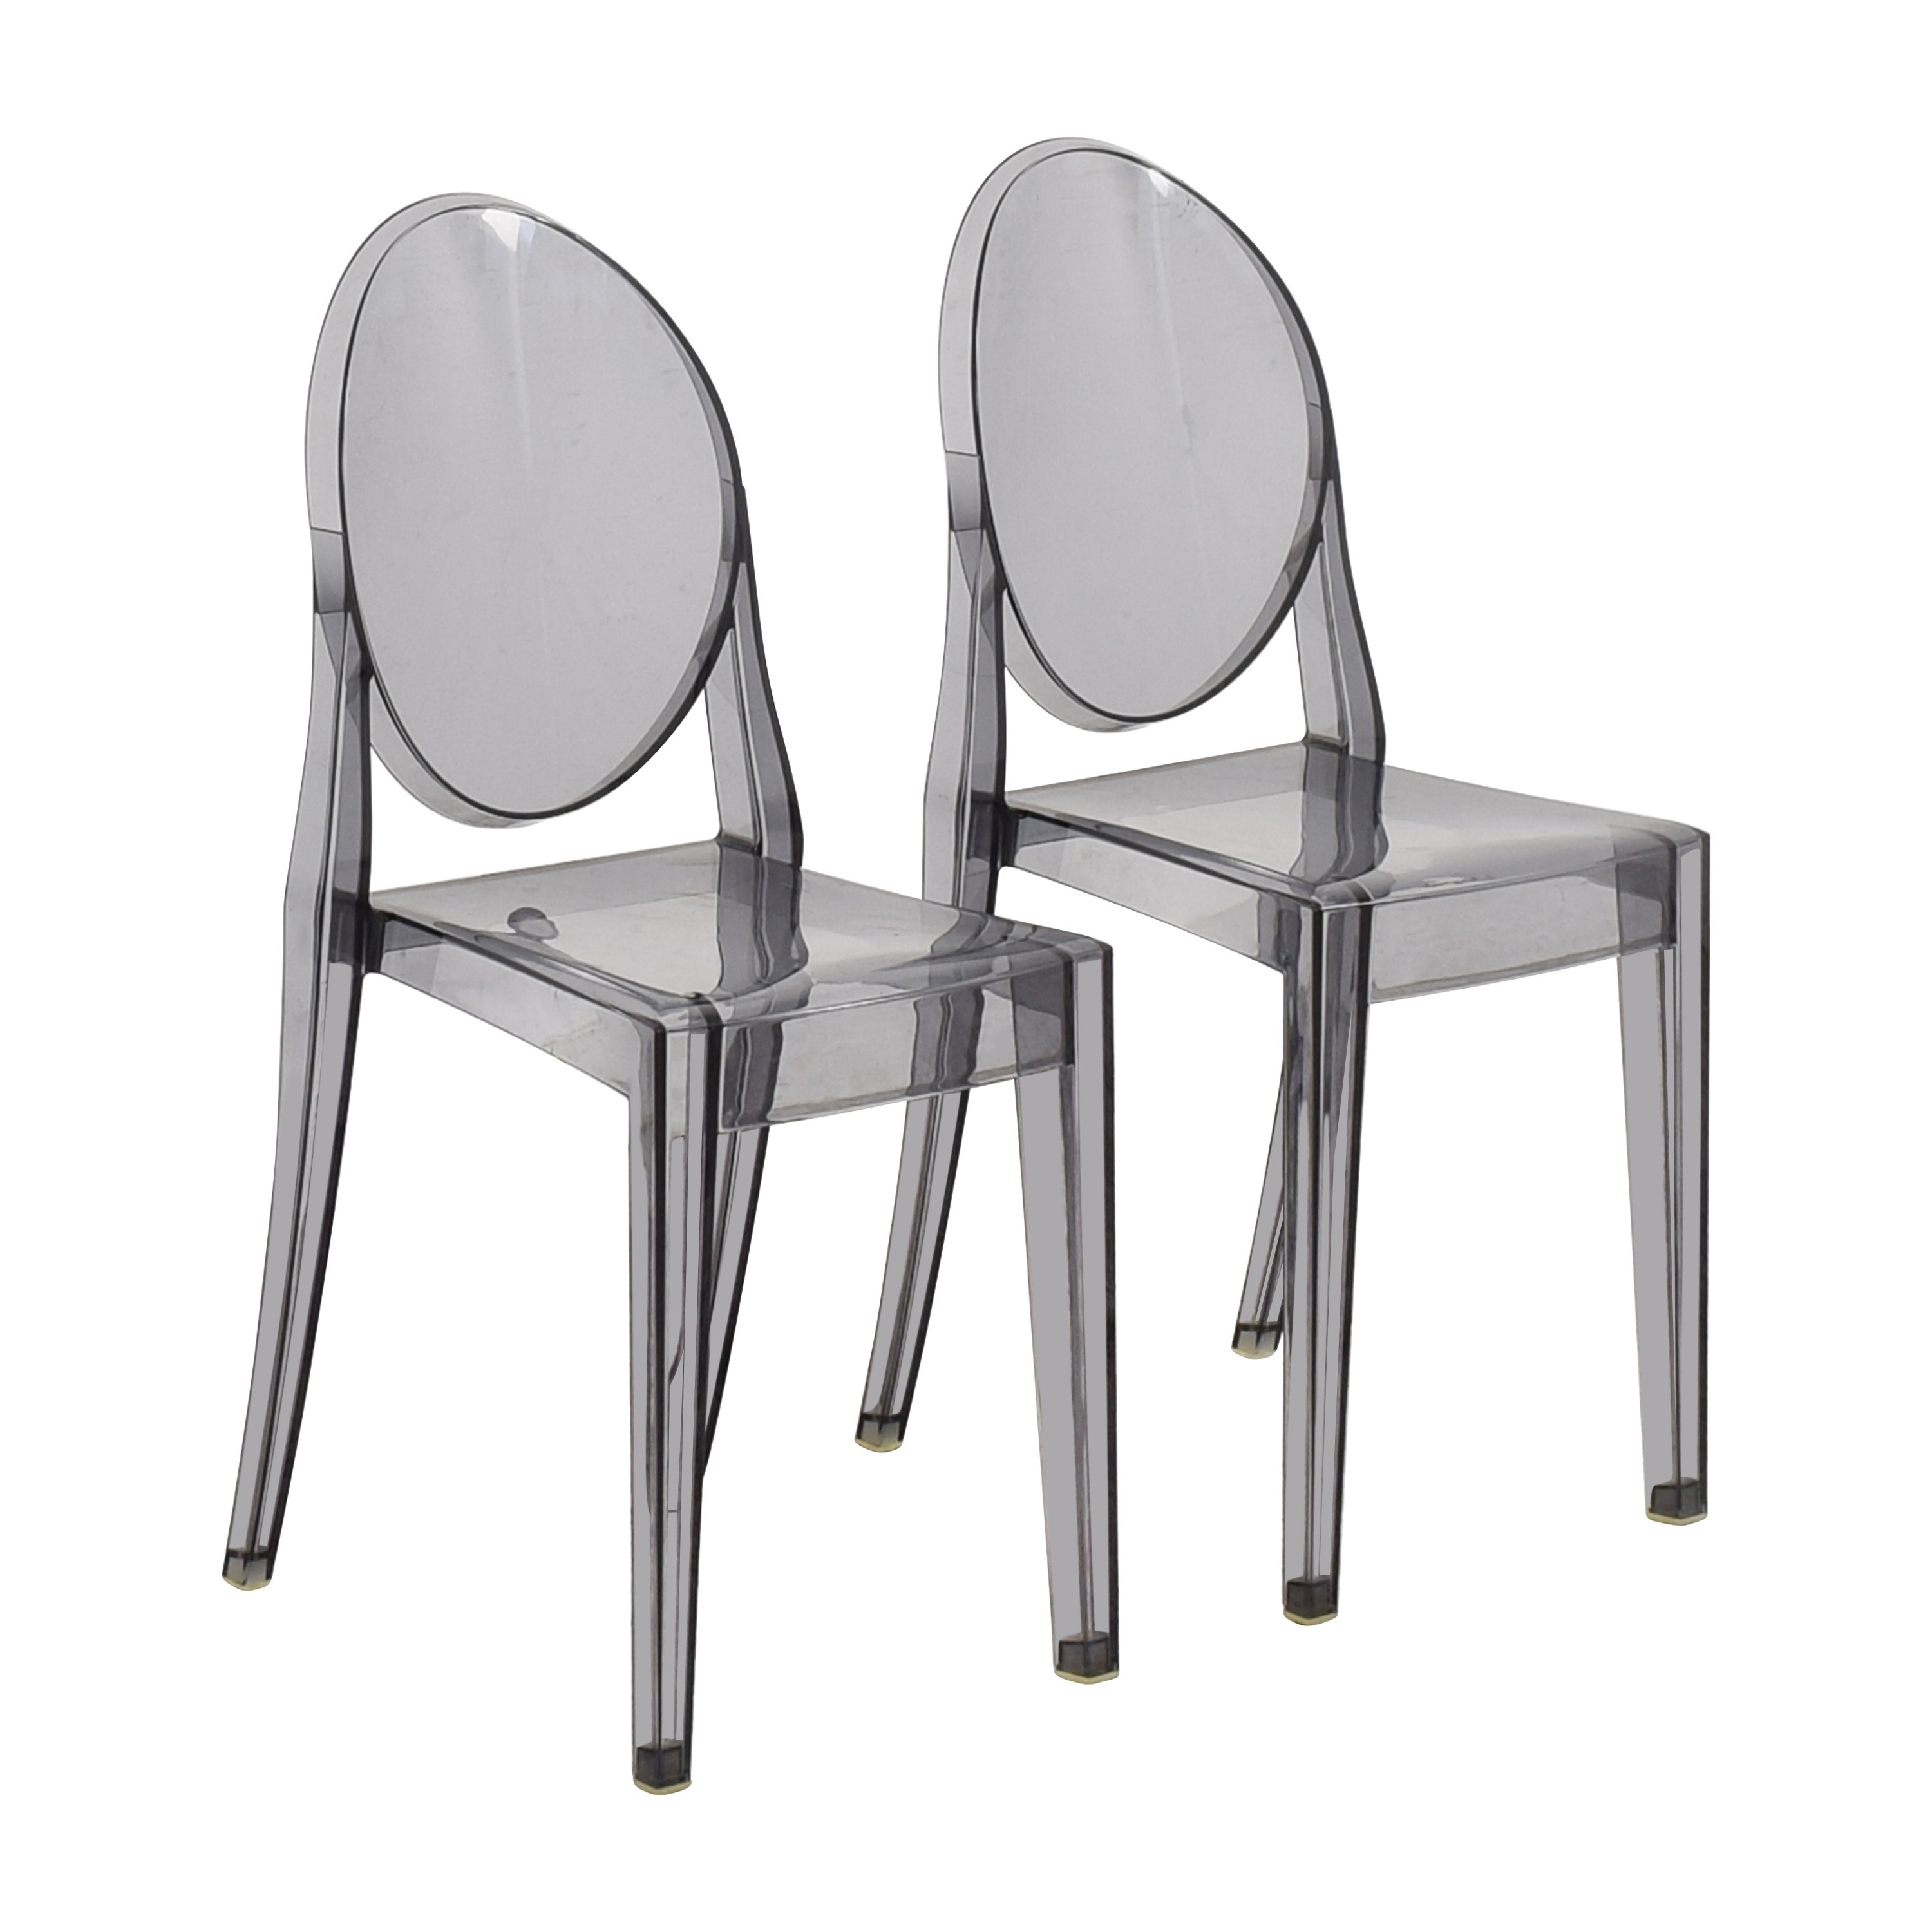 Kartell Design Within Reach Kartell Victoria Ghost Chairs for sale